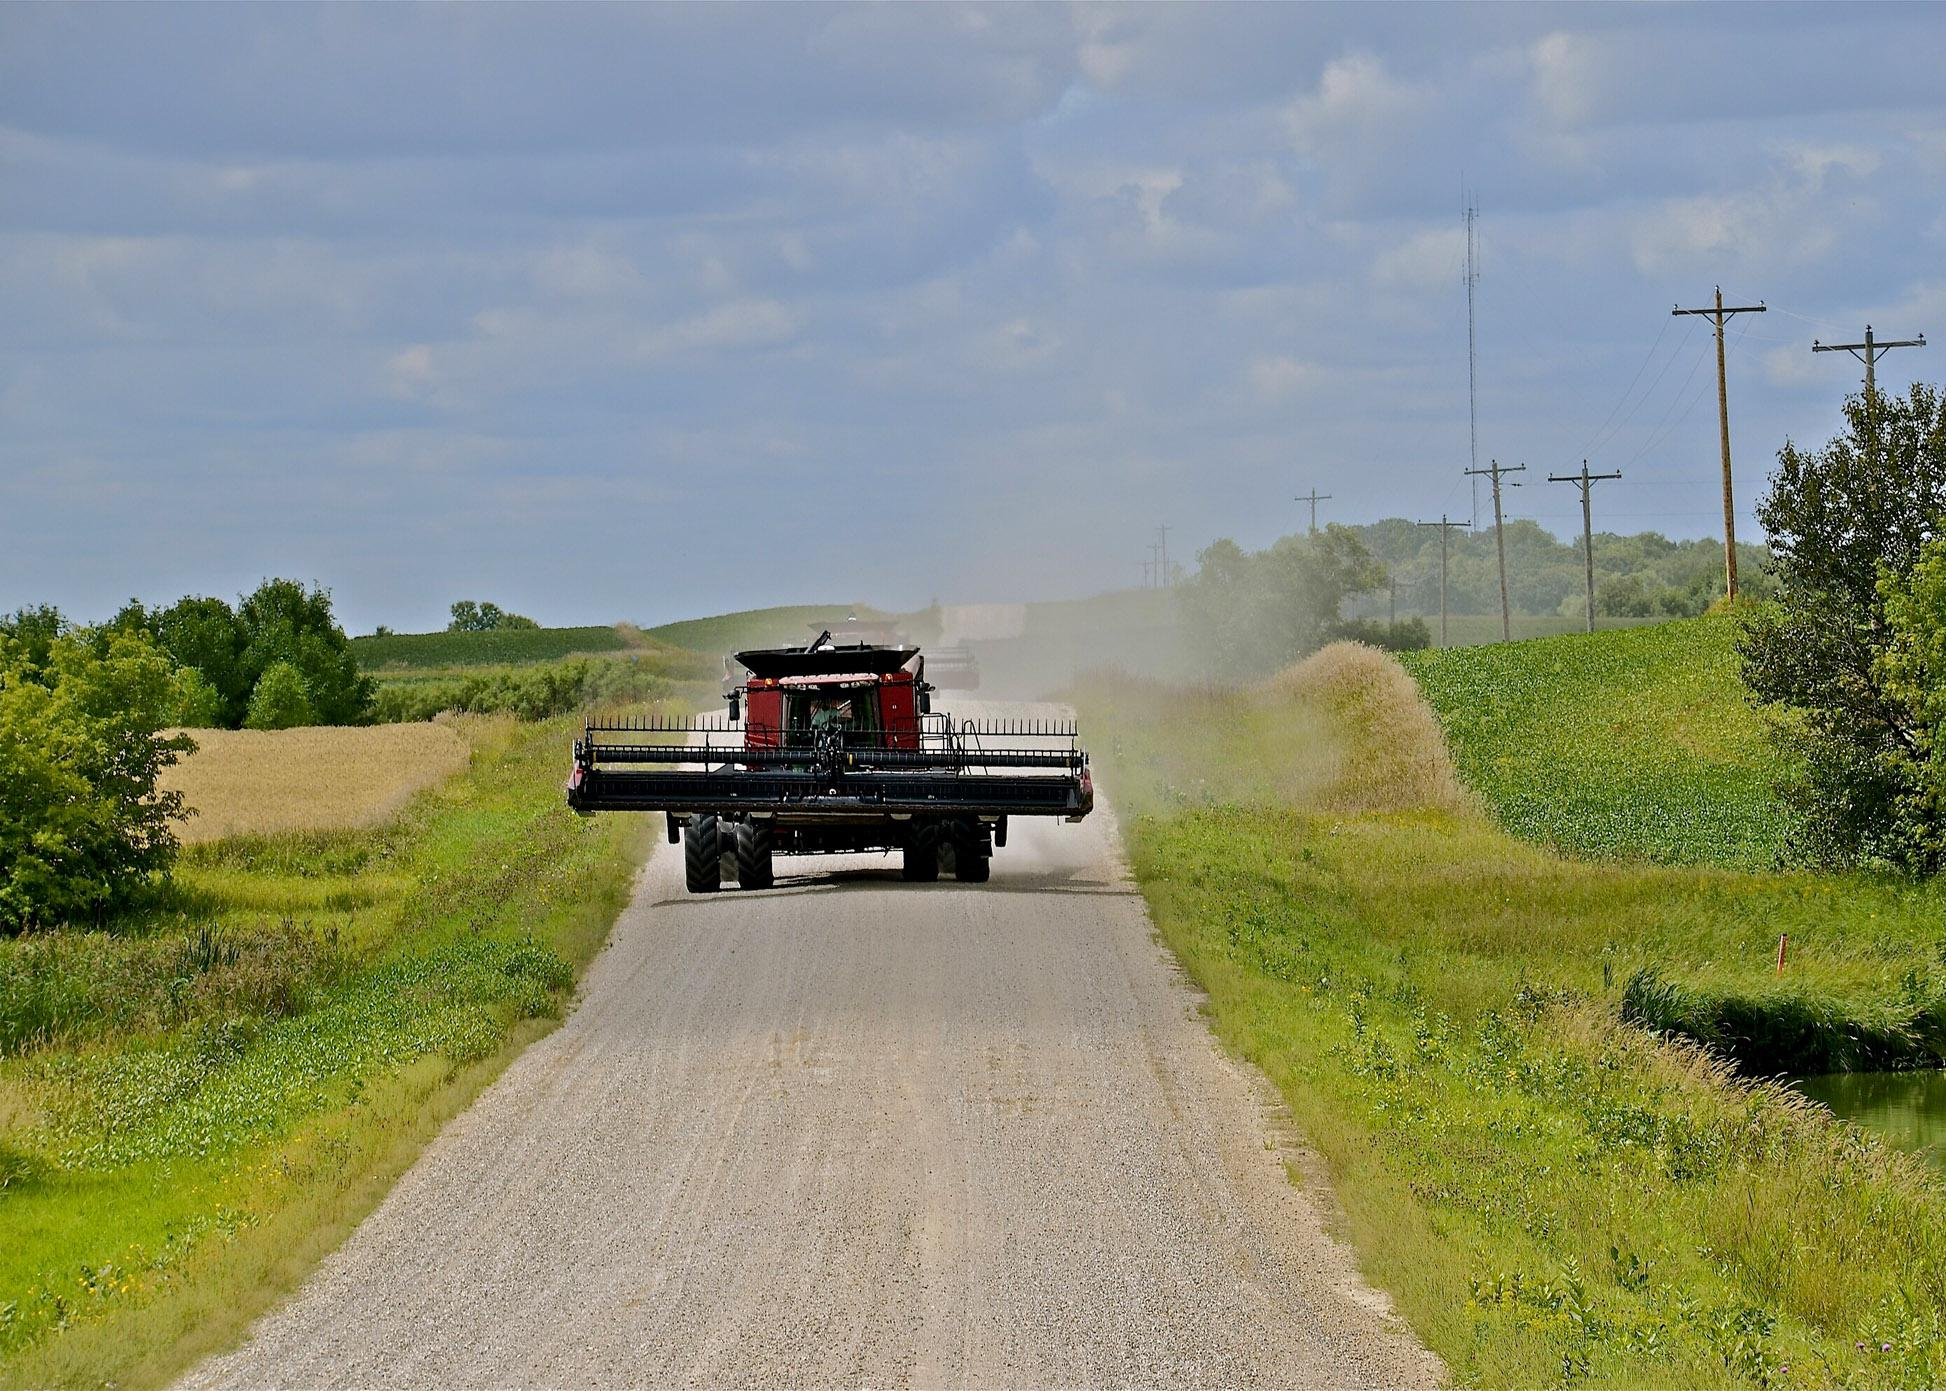 A red combine drives down a gravel road with farmland on both sides.